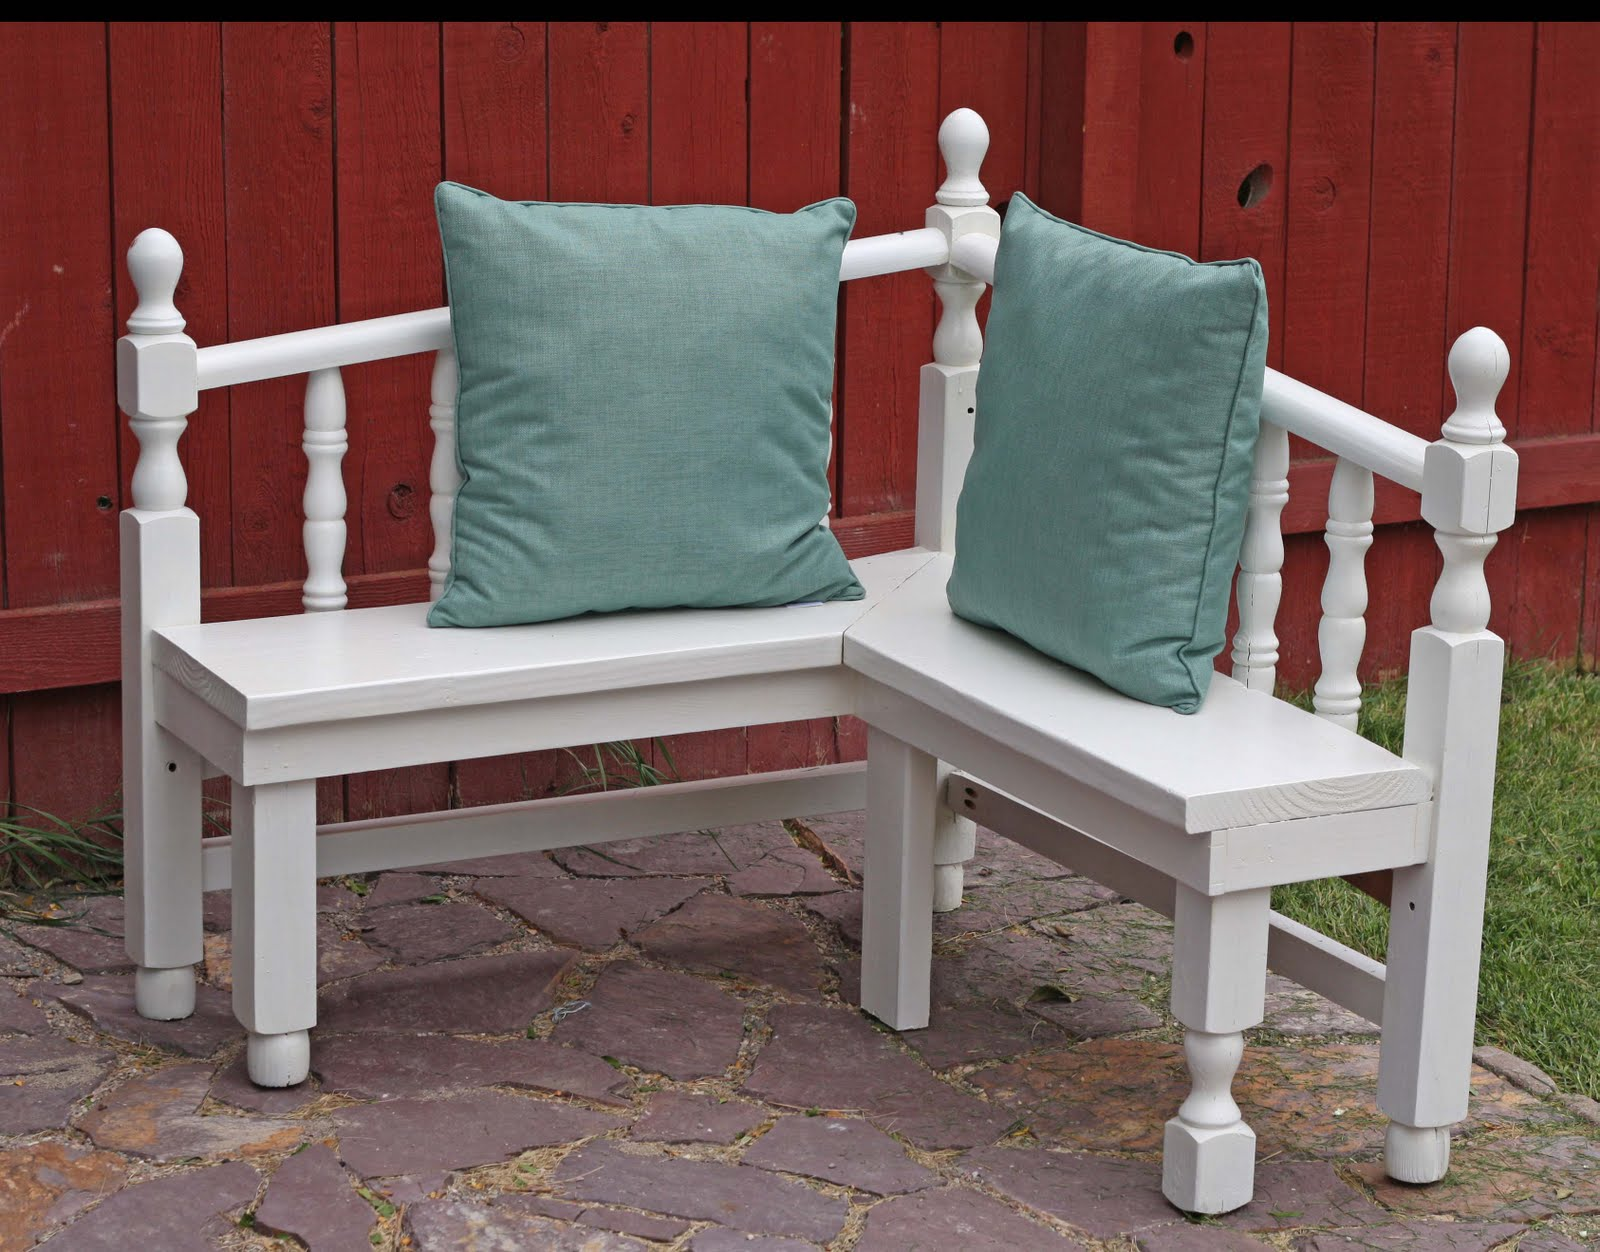 footboard girl weekend img into iron wrought country bench the and headboard